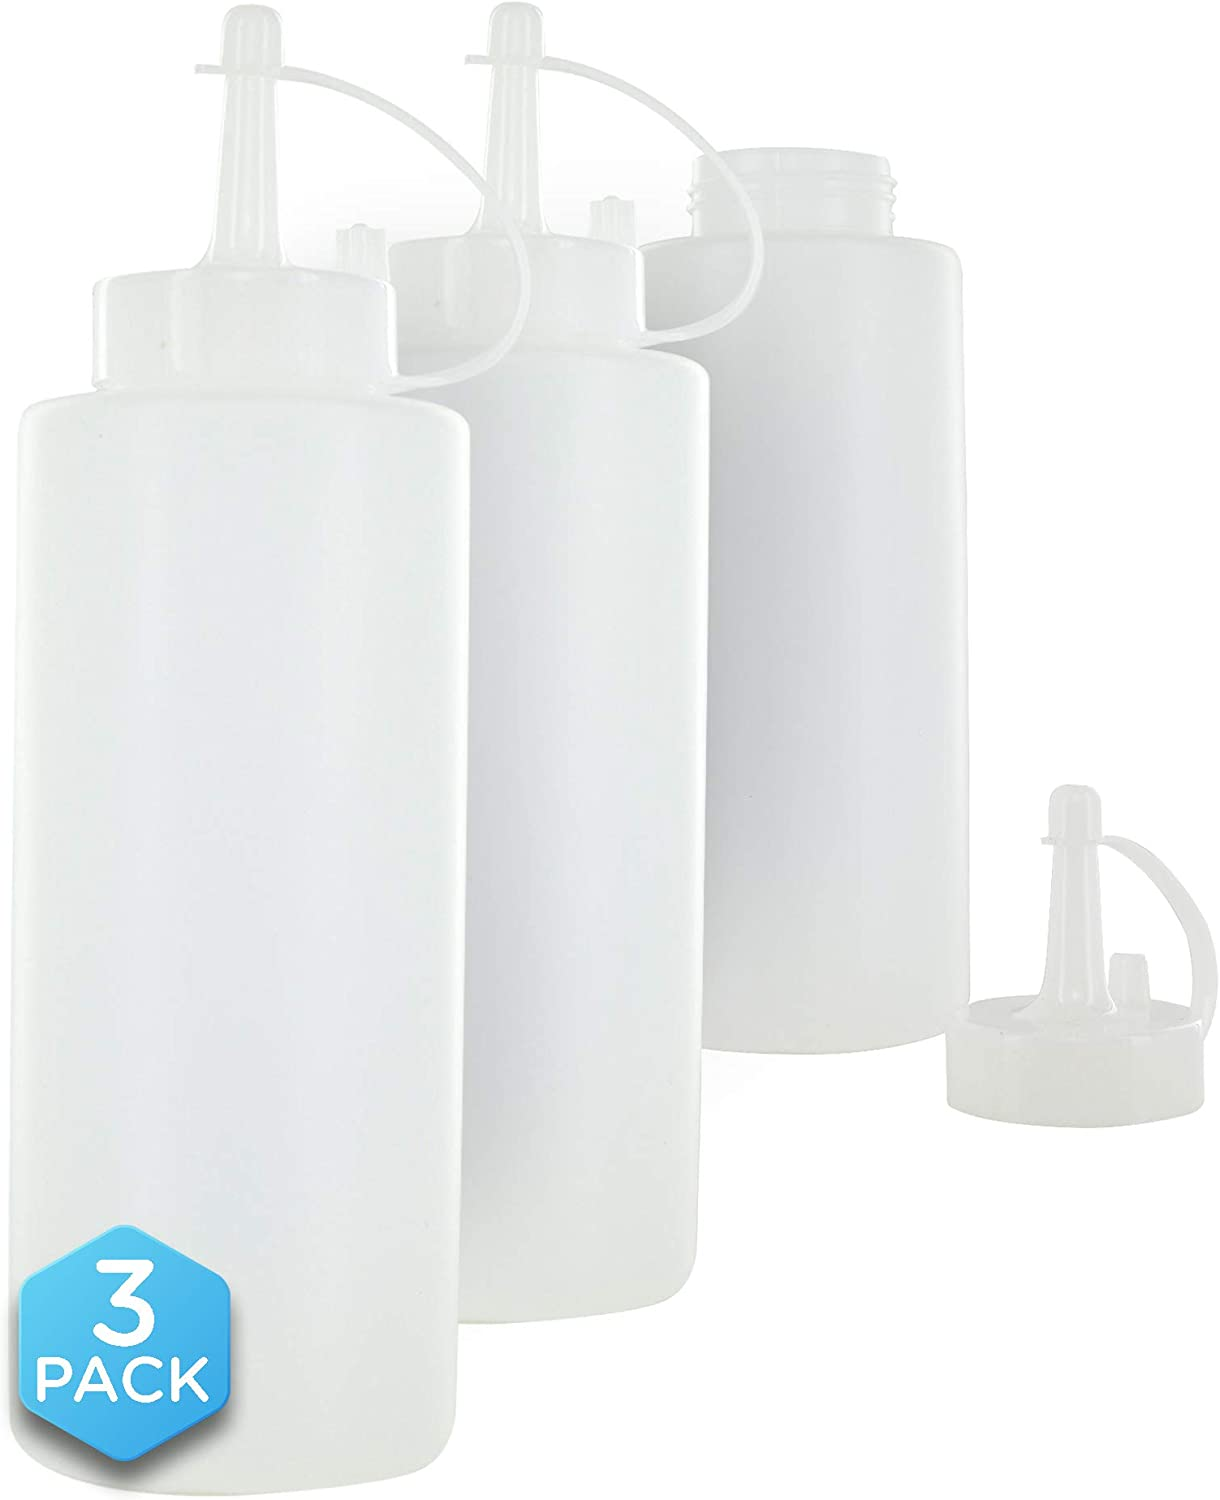 Ram Pro Plastic Squeeze Bottles with Caps 12 OZ, Kitchen Squeeze Spray Bottle Sauce Dispenser Perfect for Ketchup, Mayonnaise, Condiments, Oils and Liquids (Pack of 3)